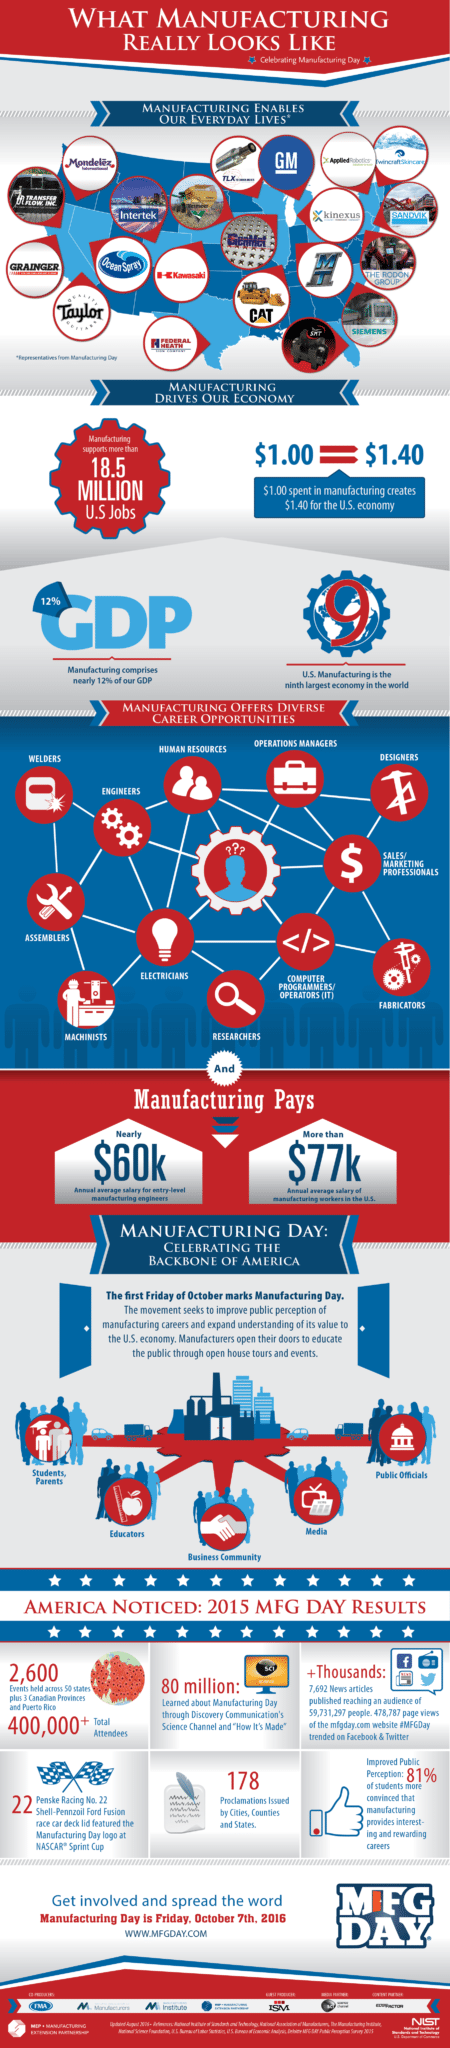 manufacturing impacts